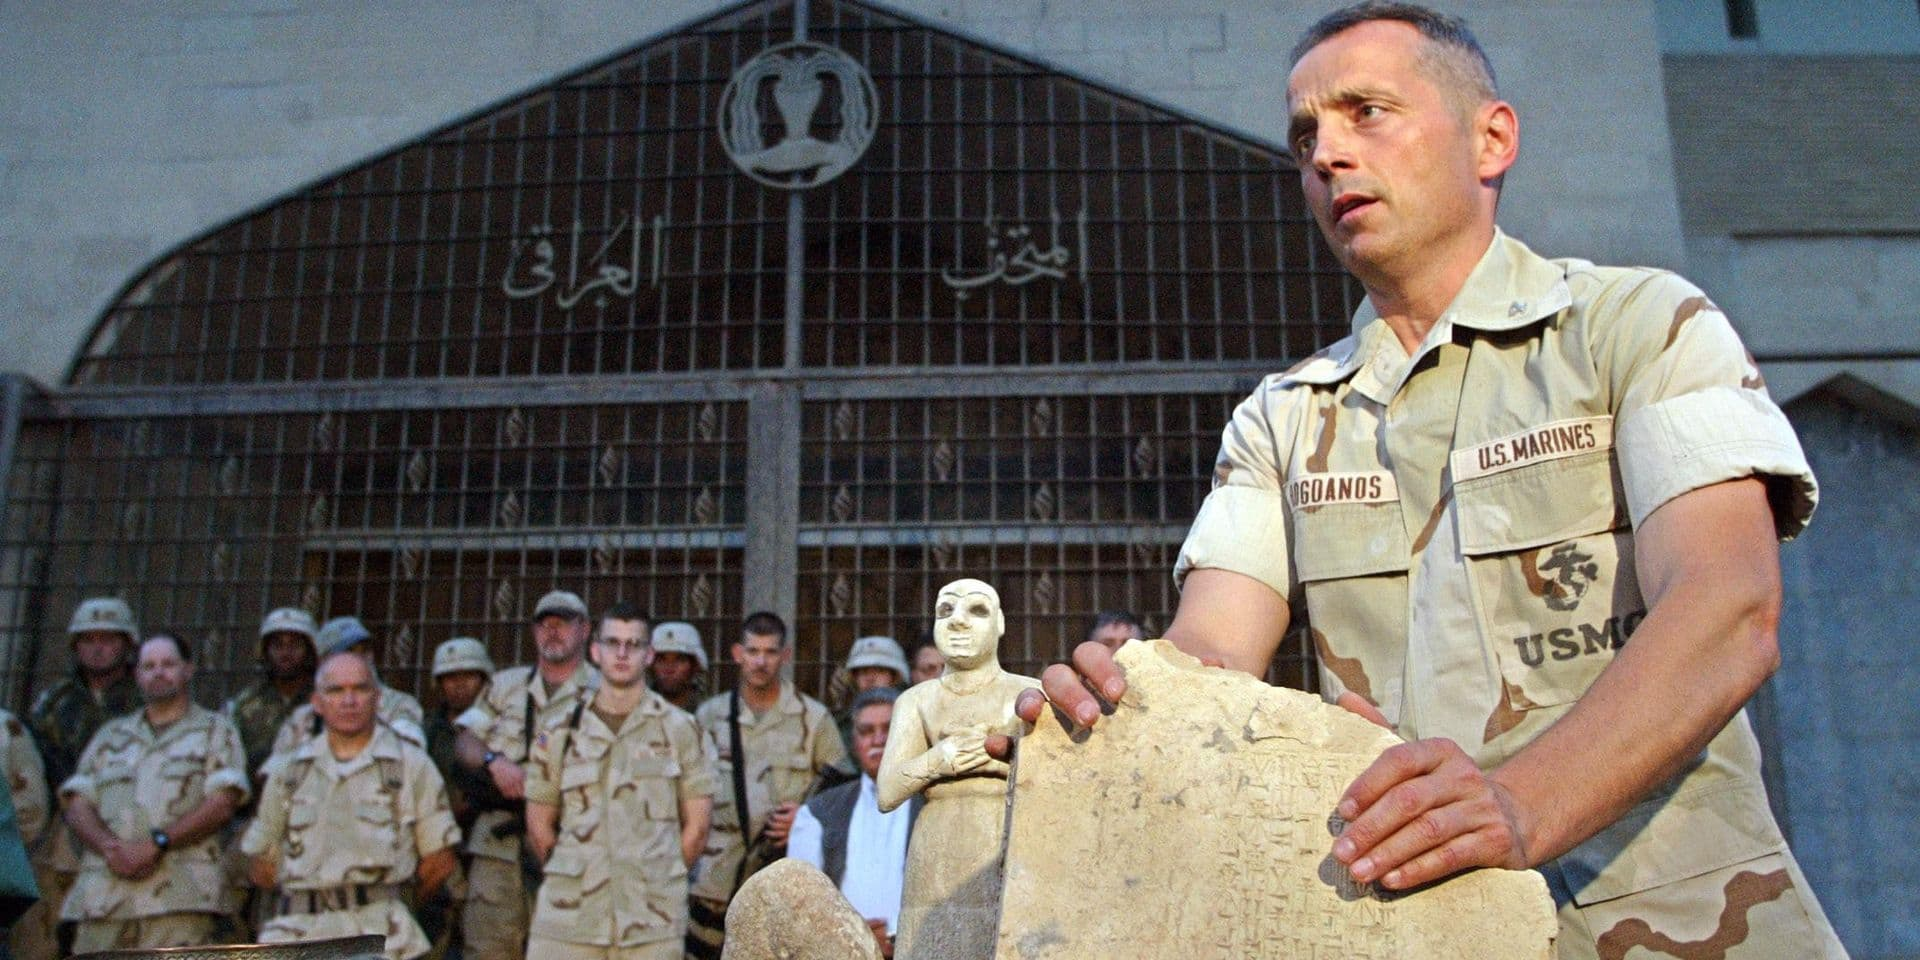 US Colonel Matthew Bogdanos, lead investigator in finding looted treasures taken from the Baghdad Archeological Museum, directs a presentation to the press in Baghdad, 16 May 2003. Investigators have recovered 951 artifacts and determined many items had been stored for their security in pre-war hidding sites. One of the oldest known bronze relief bowls, an Assiryan pottery jar from the sixth millenium B.C., one of the earliest known Sumerian free-standing statue and a carved rock from the Babilonic period were pesented to the press. AFP PHOTO/Behrouz MEHRI / AFP PHOTO / BEHROUZ MEHRI